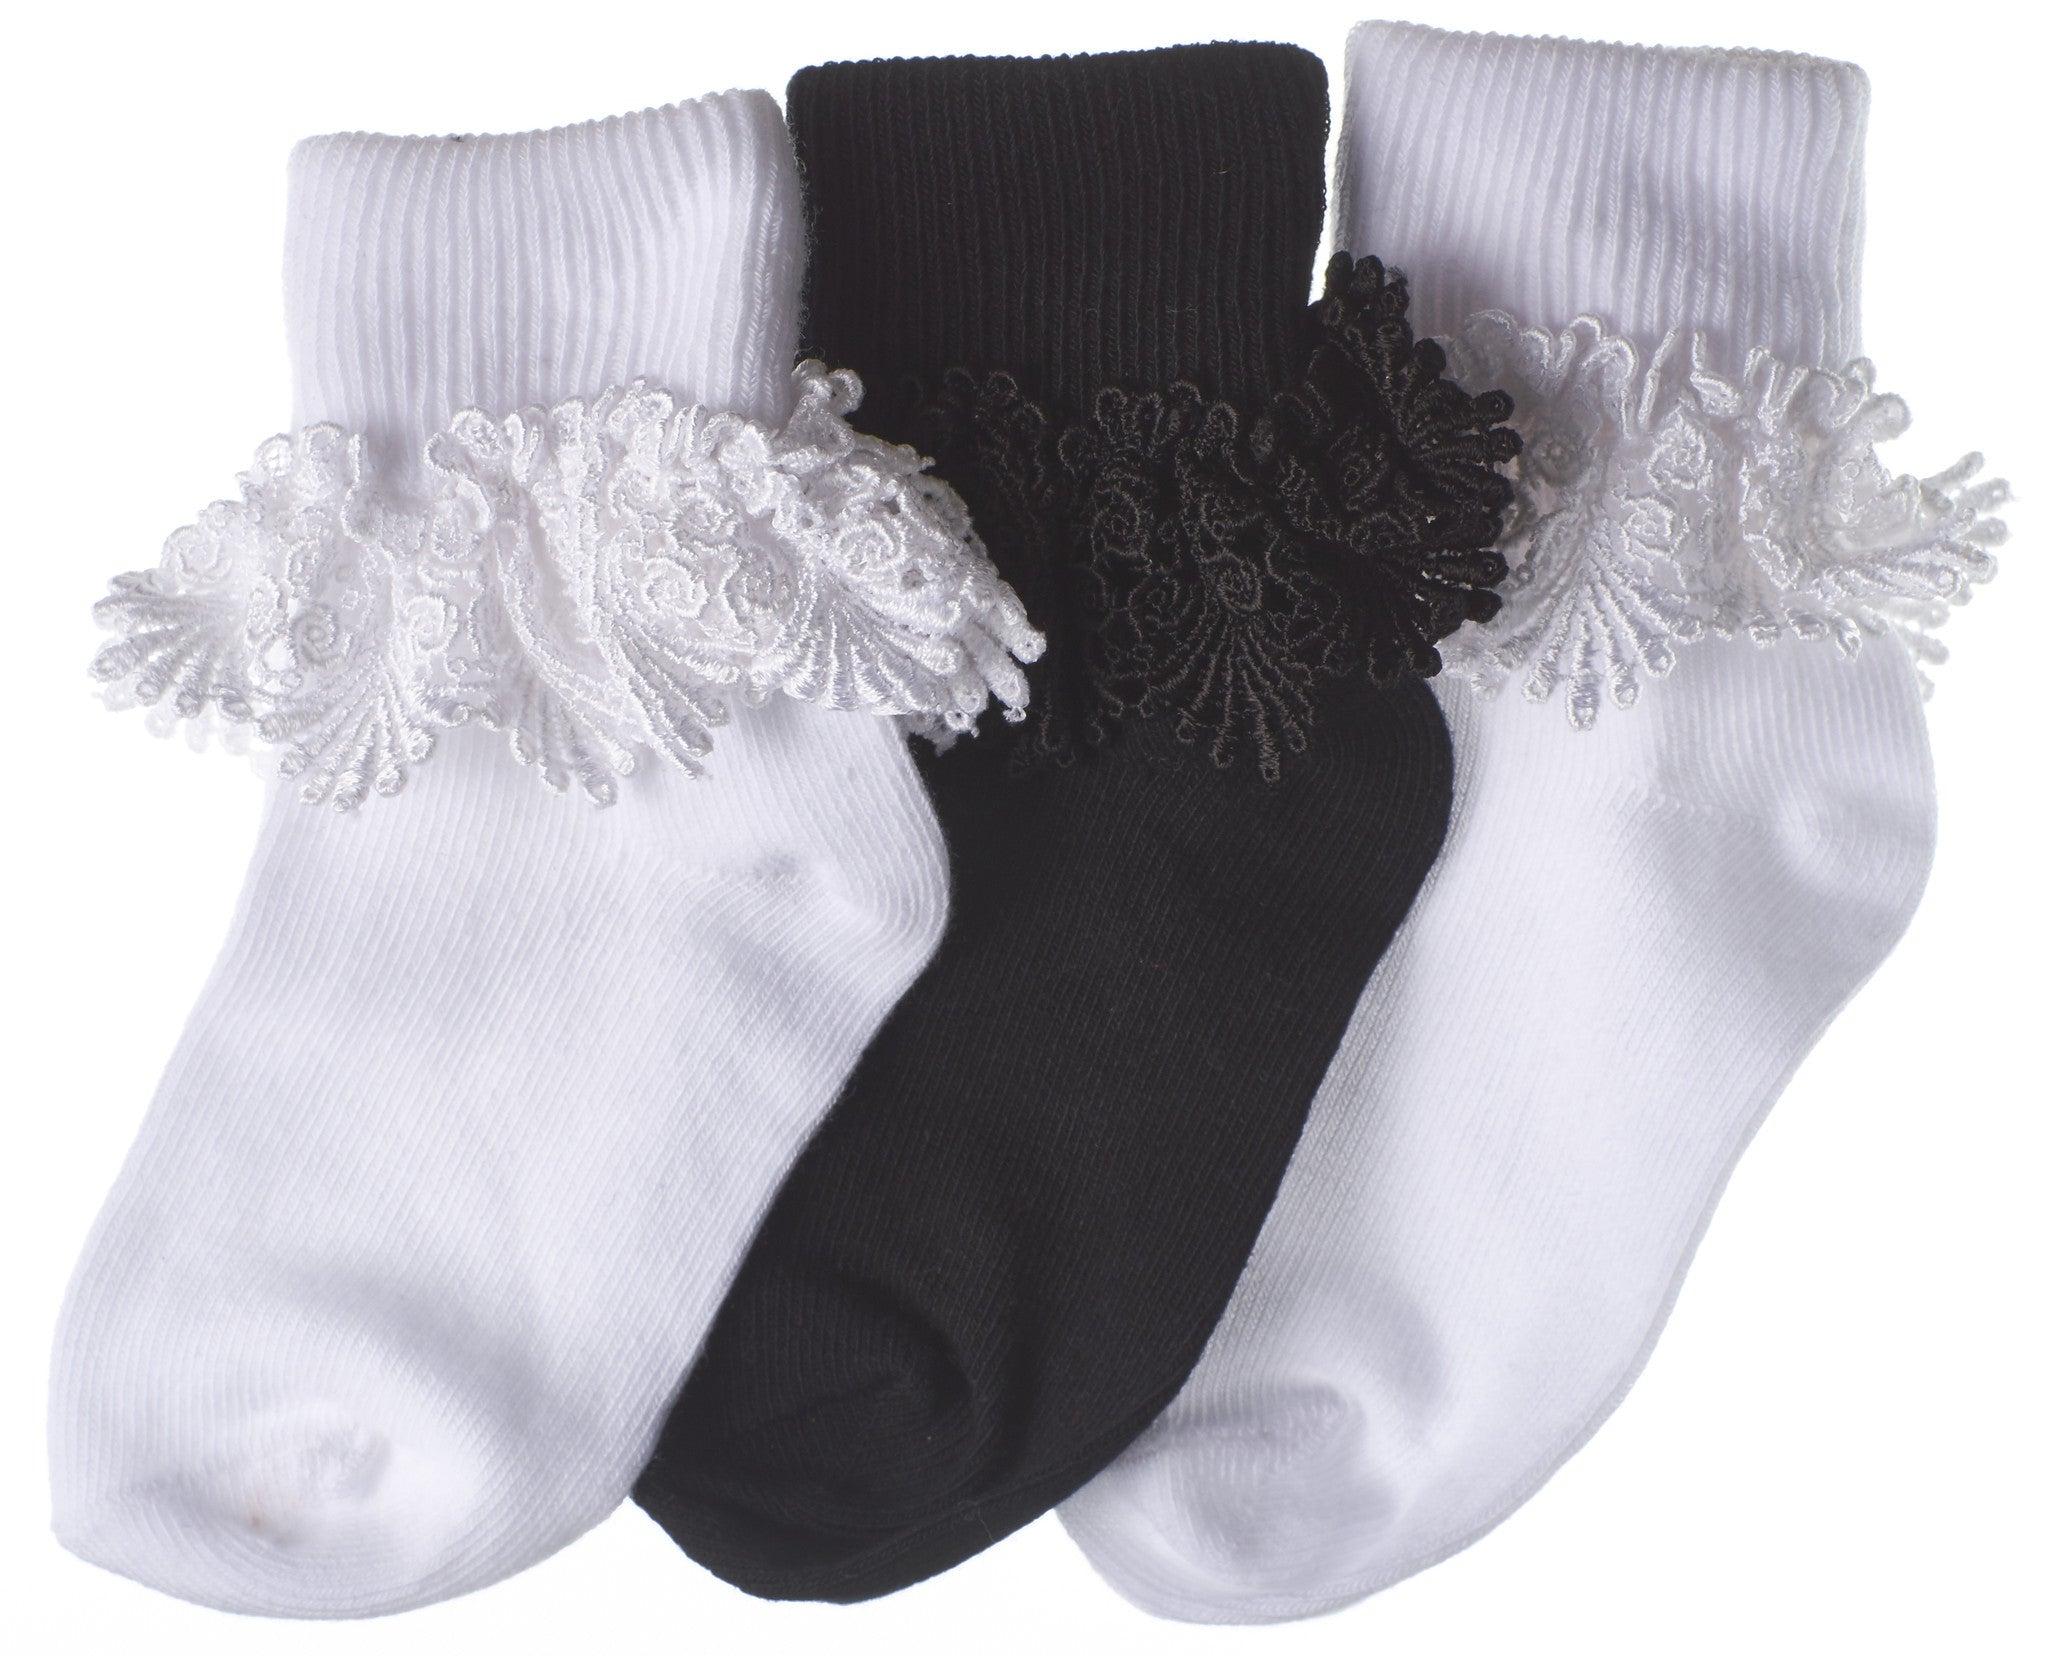 3-Pack Shiny Scallop Lace Turncuff Toddler Girls Socks (White/Black/White)